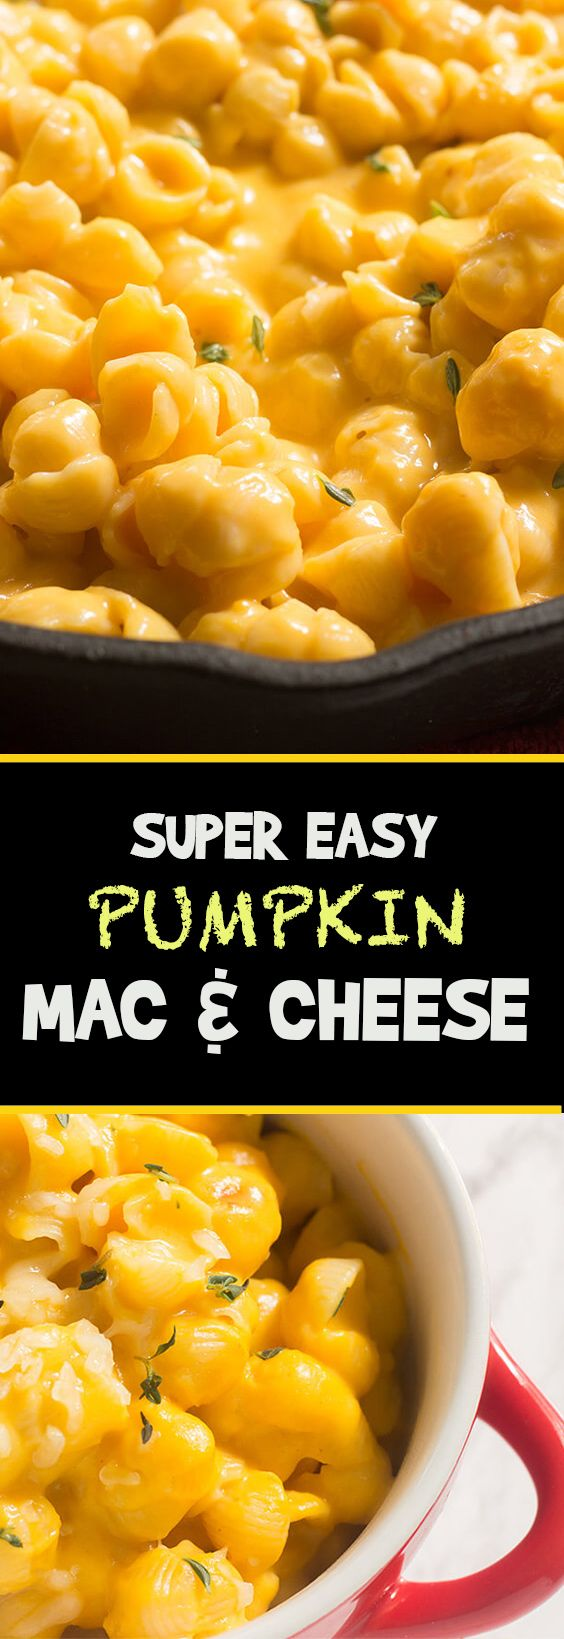 I'm all in with this super easy pumpkin mac and cheese. This recipe is full of flavor and can be whipped up in a few minutes. Make it today!